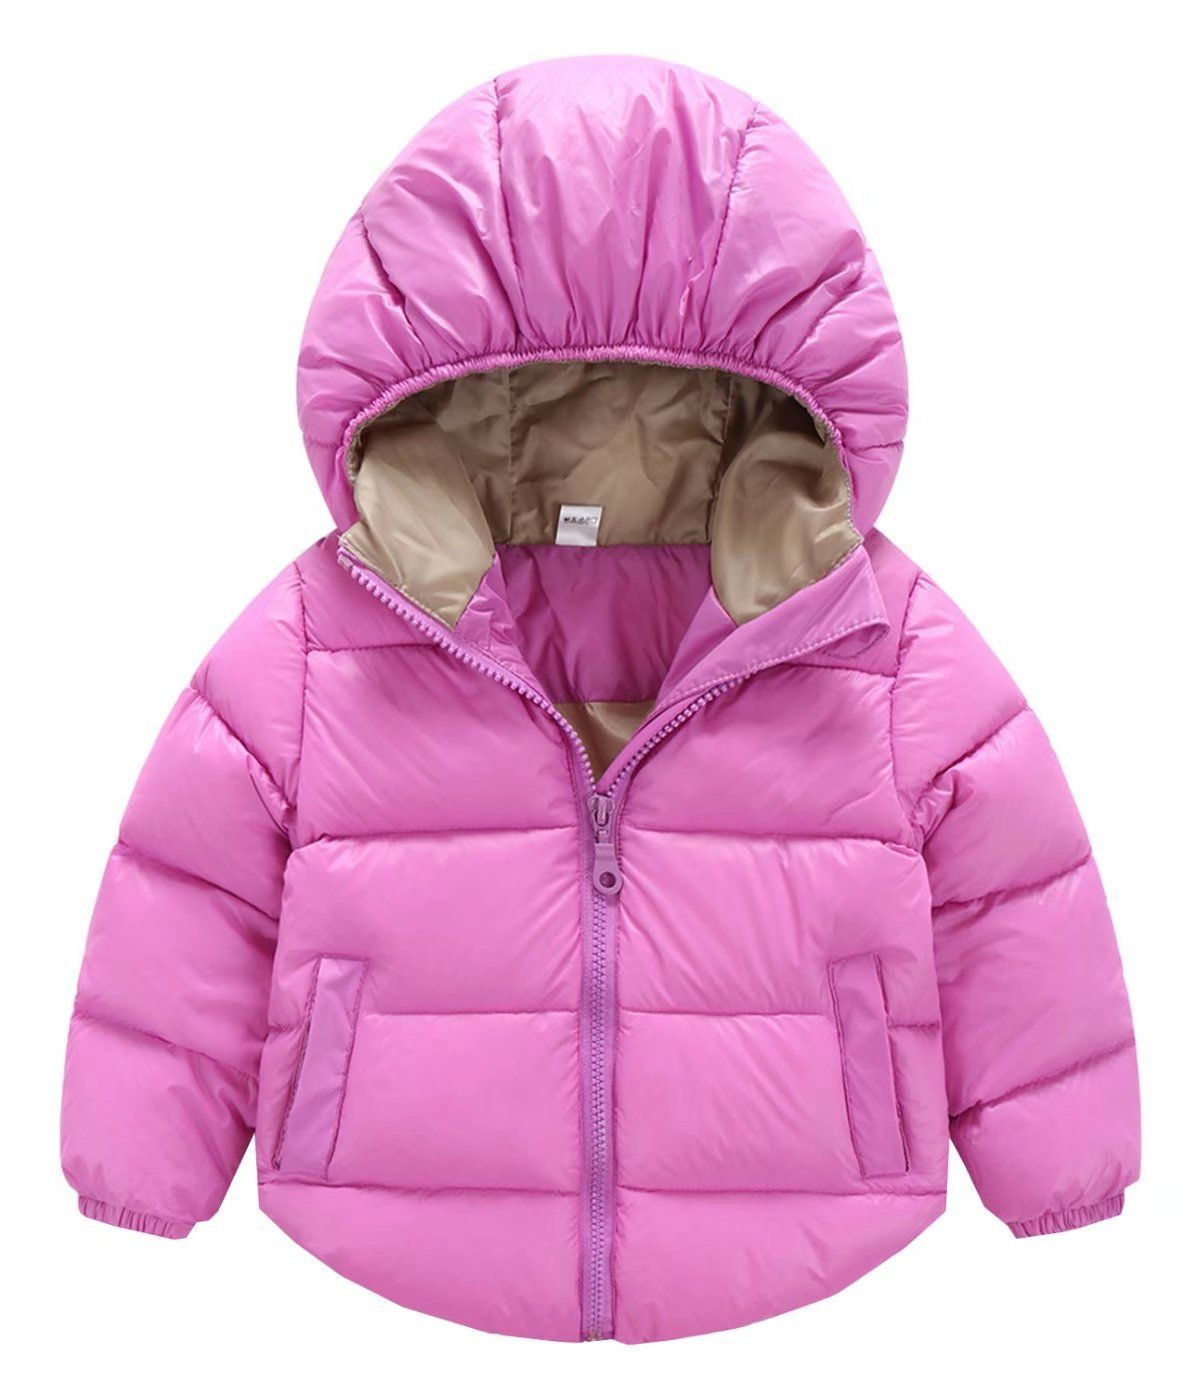 Toddler Baby Girls Boys Winter Warm Hoodie Snowsuit Solid Down Jacket Coat Outerwear Outfits Set Clothes